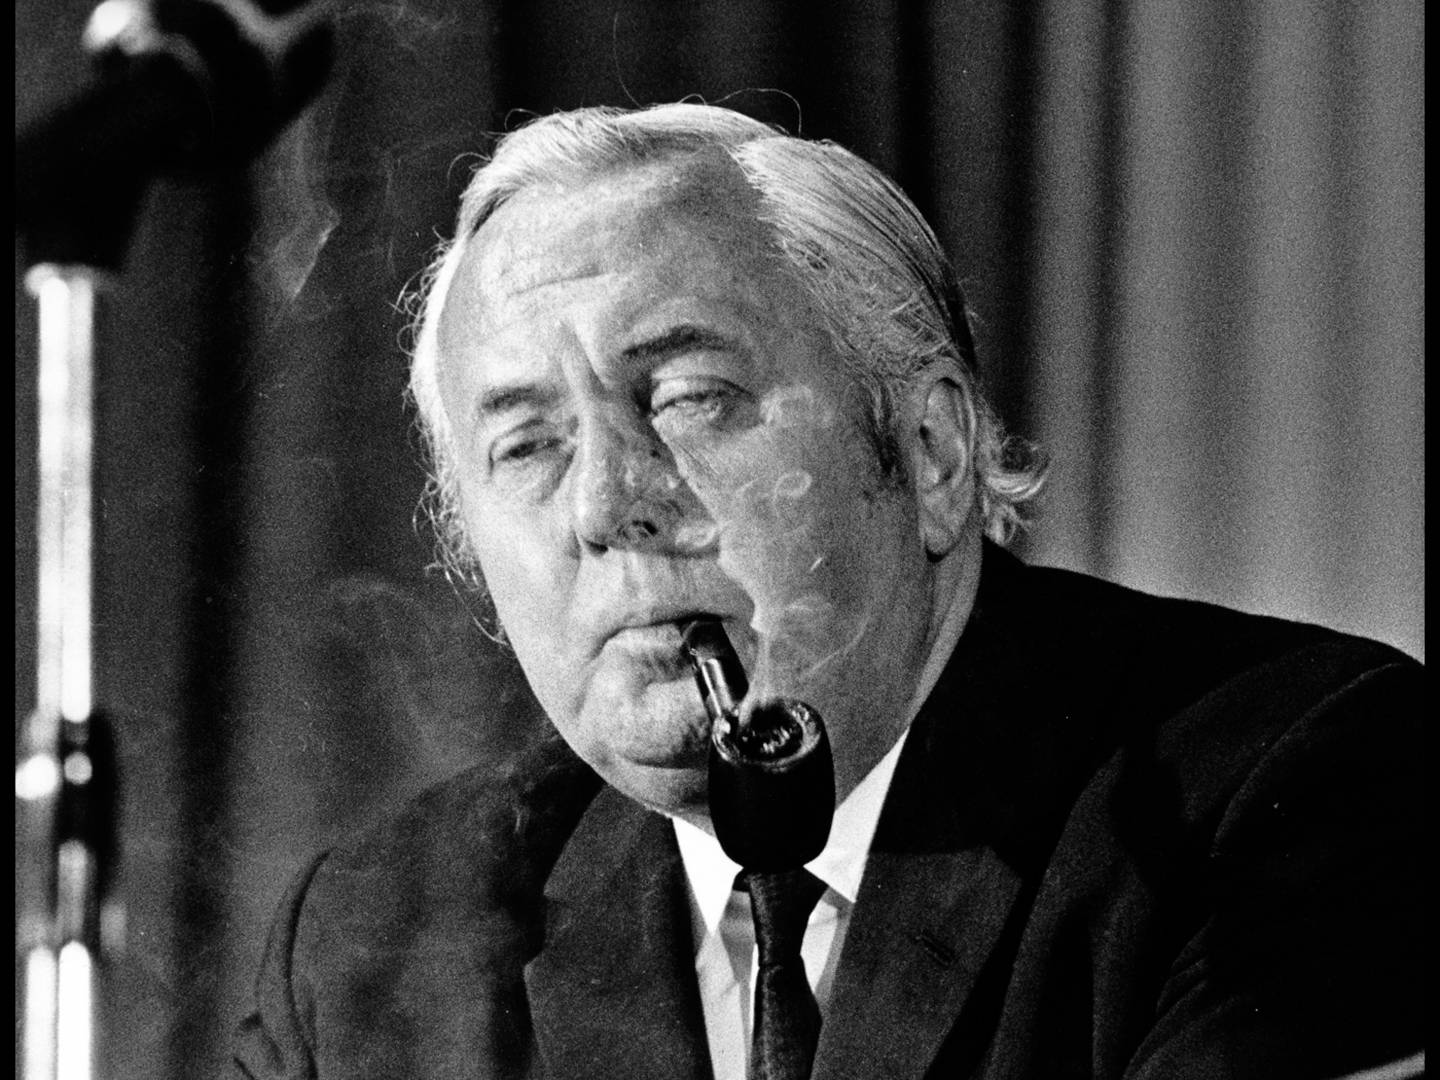 Harold Wilson, British prime minister from James Harold Wilson from 1964 to 1970 and 1974 to 1976 (©Don Morley)